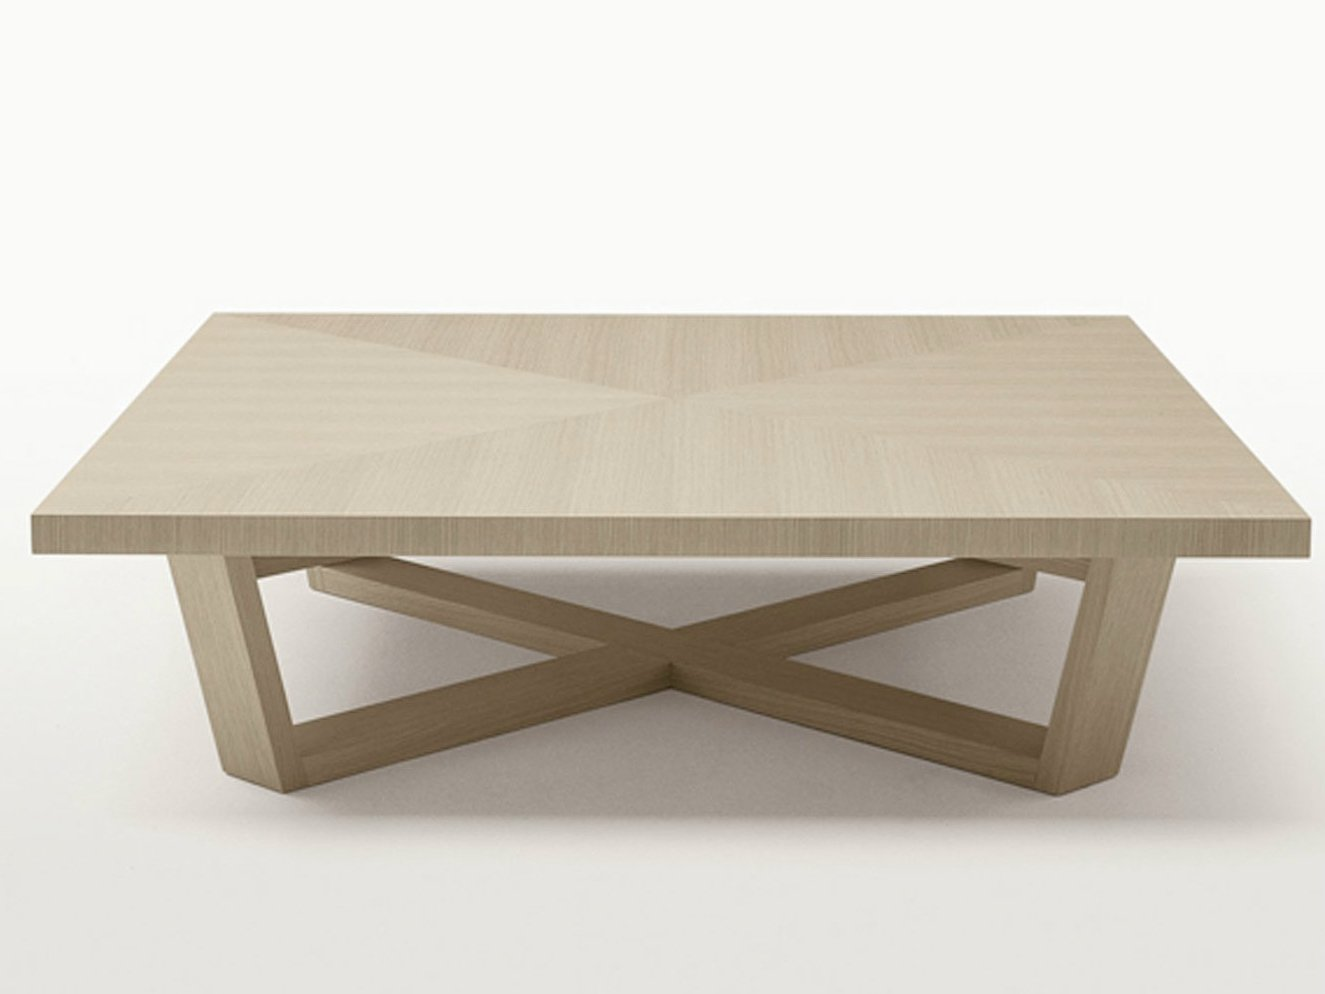 Table basse carr e en bois massif collection xilos by maxalto a brand of b a - Table basse carree bois massif ...